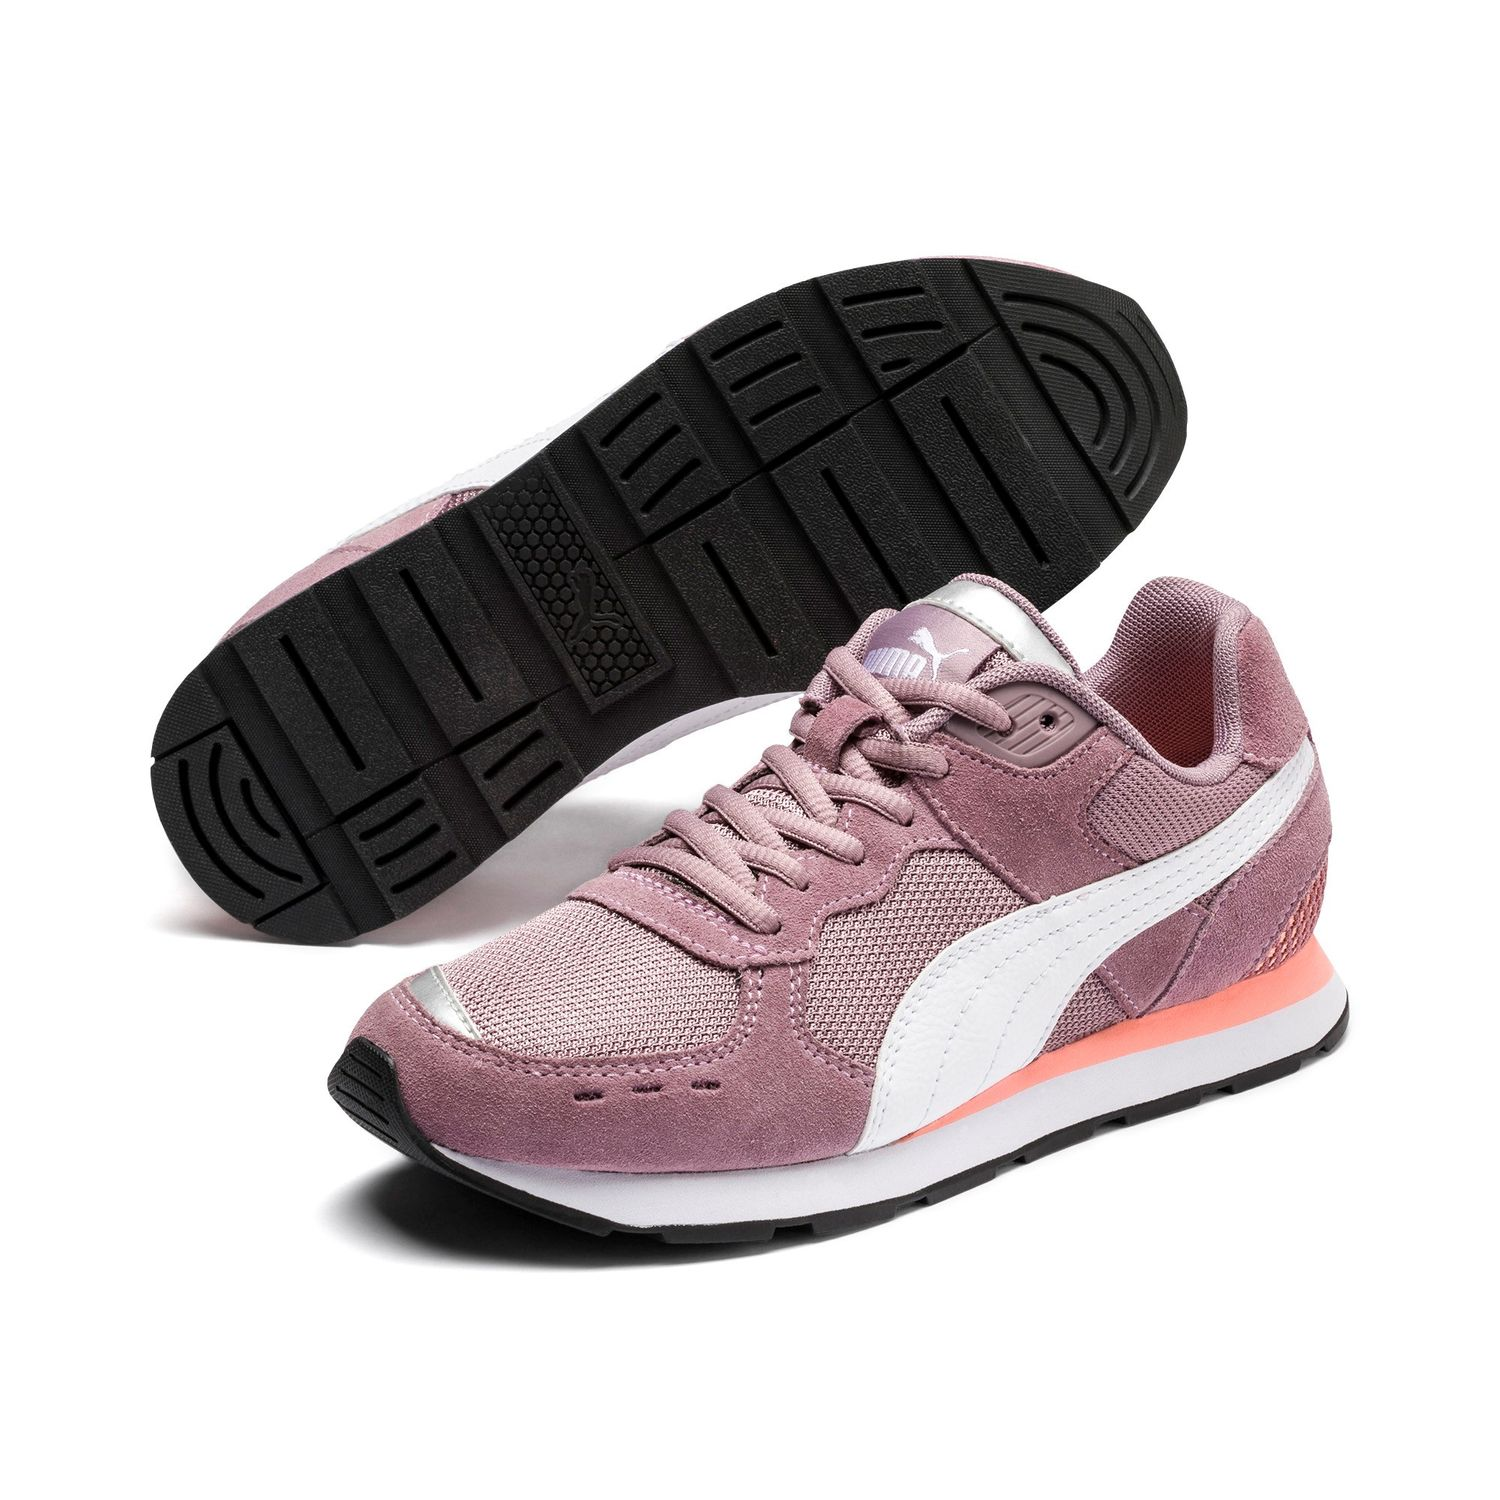 Details about Puma Vista Jr Women Children Unisex Trainers Shoes Retro  369539 Elderberry